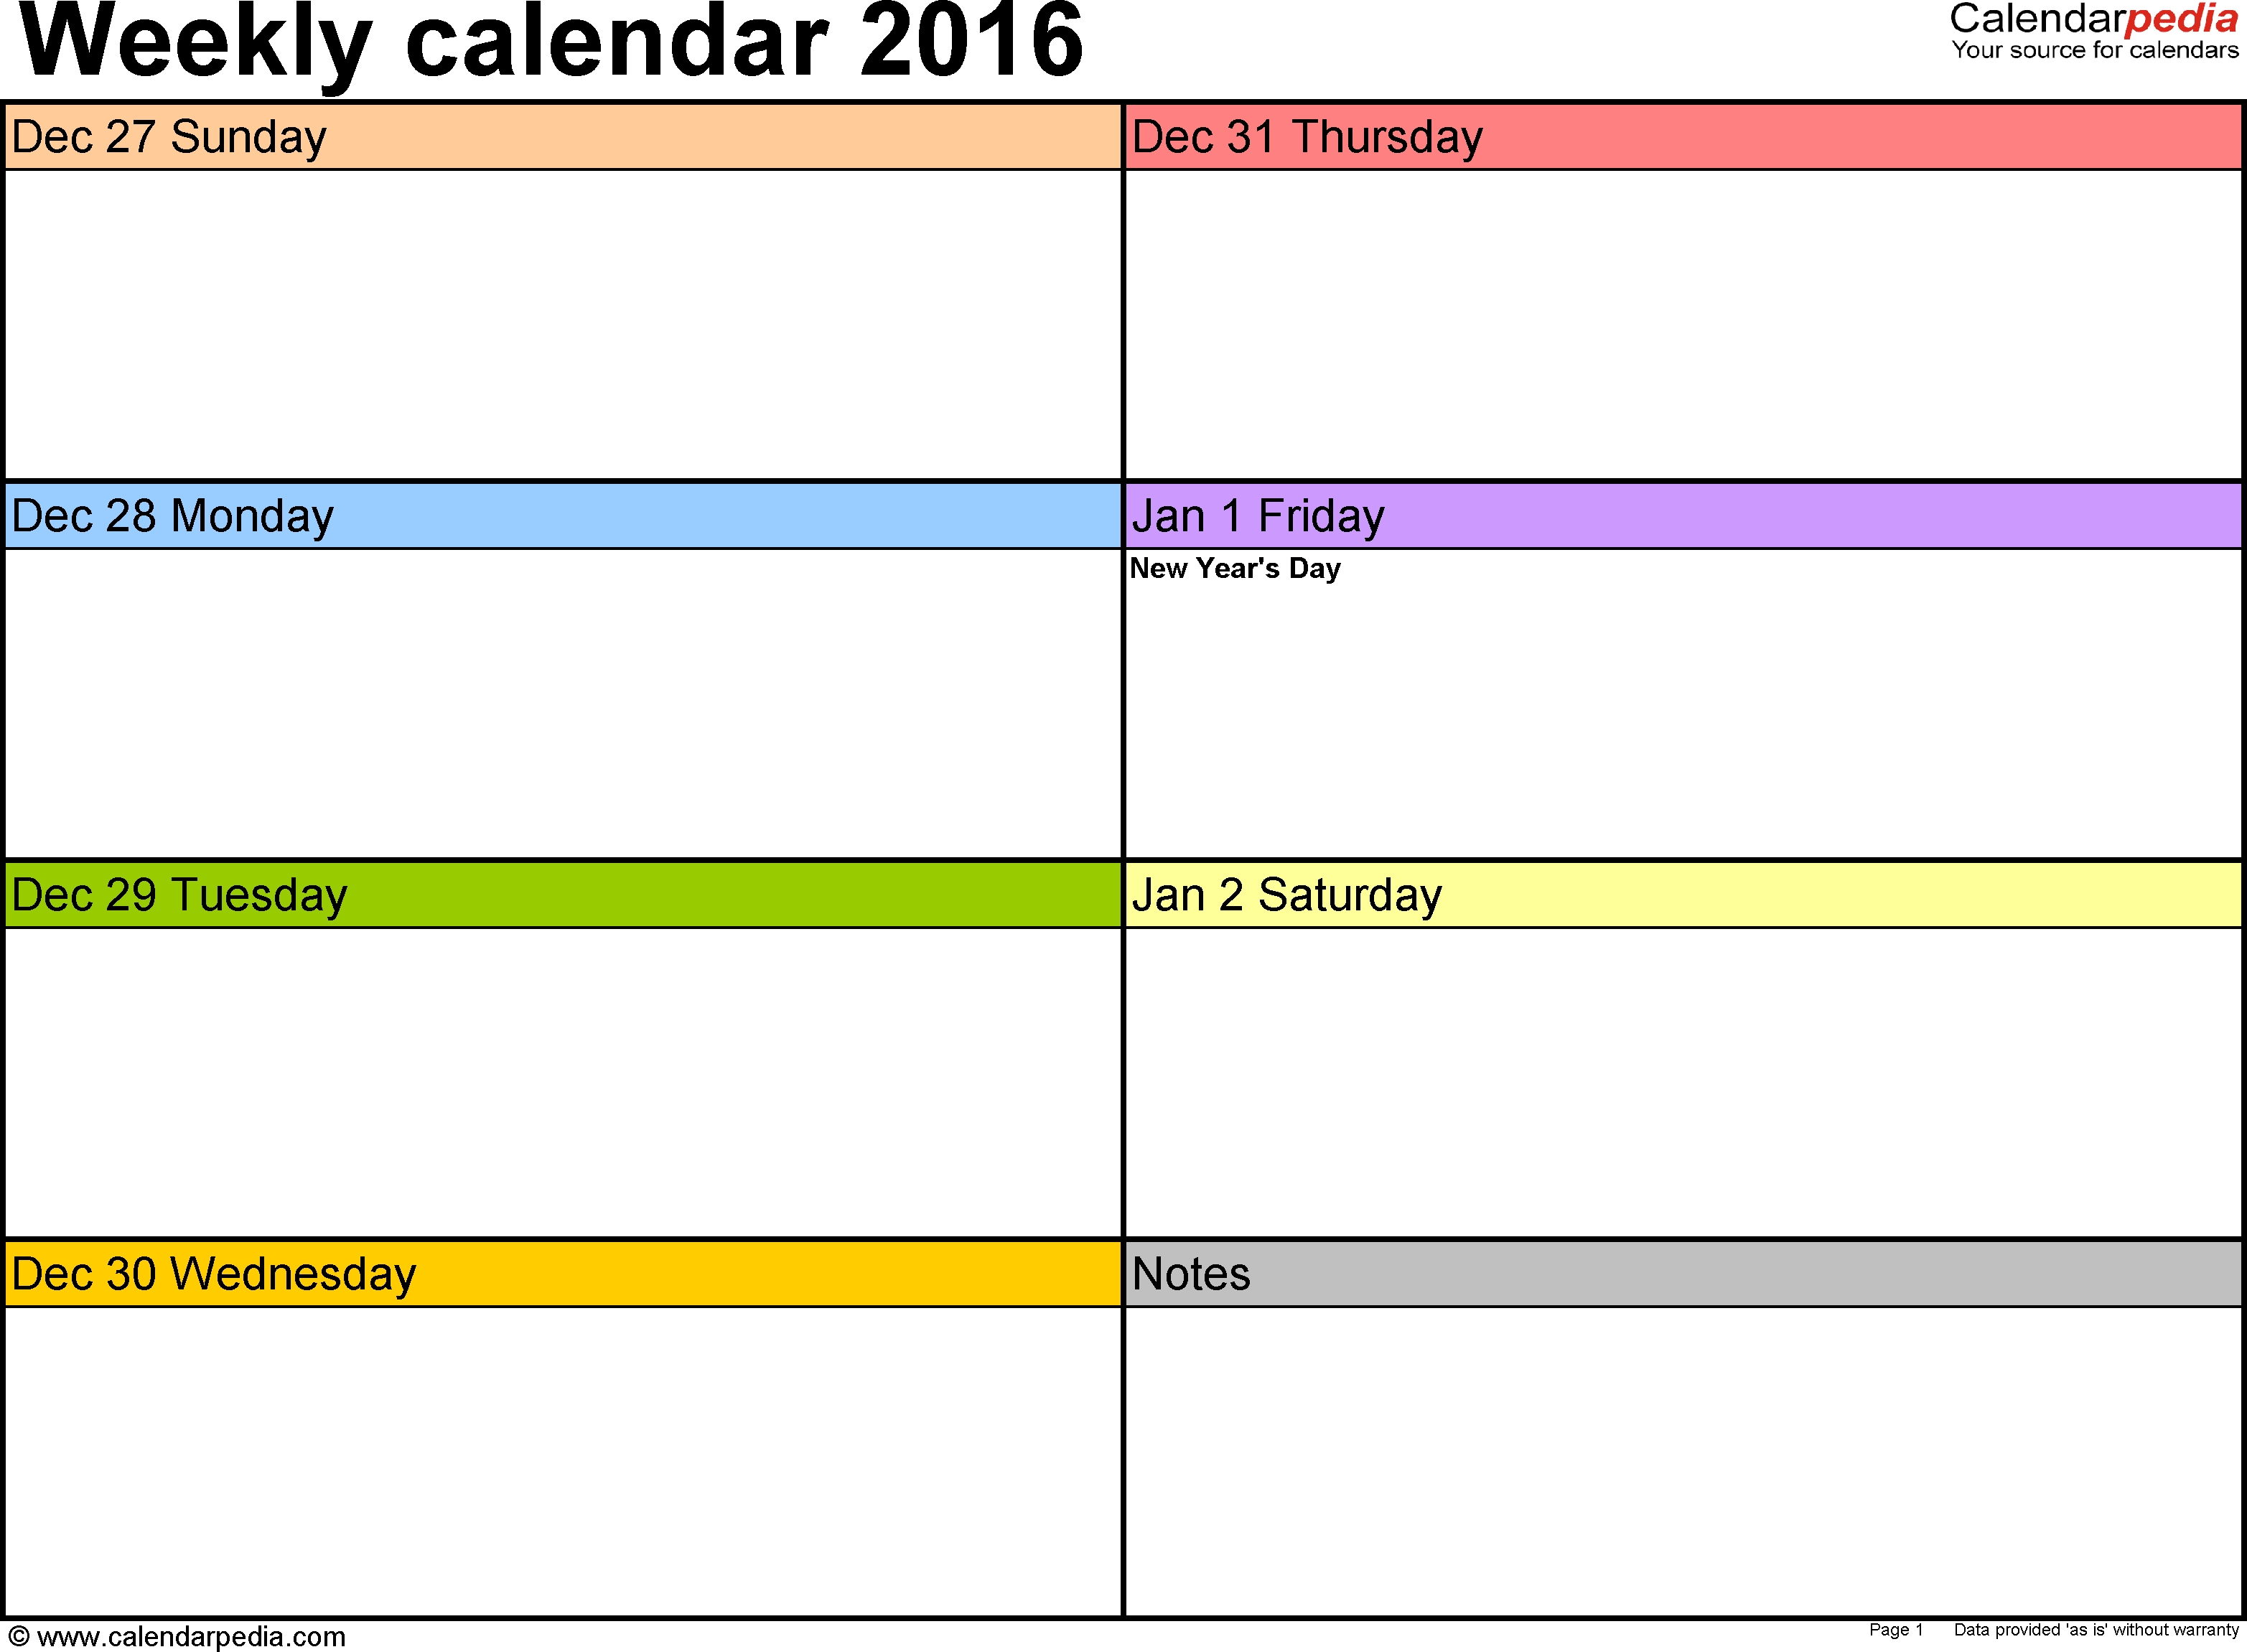 Weekly Calendar 2016 For Word - 12 Free Printable Templates Calendar Week To View Template